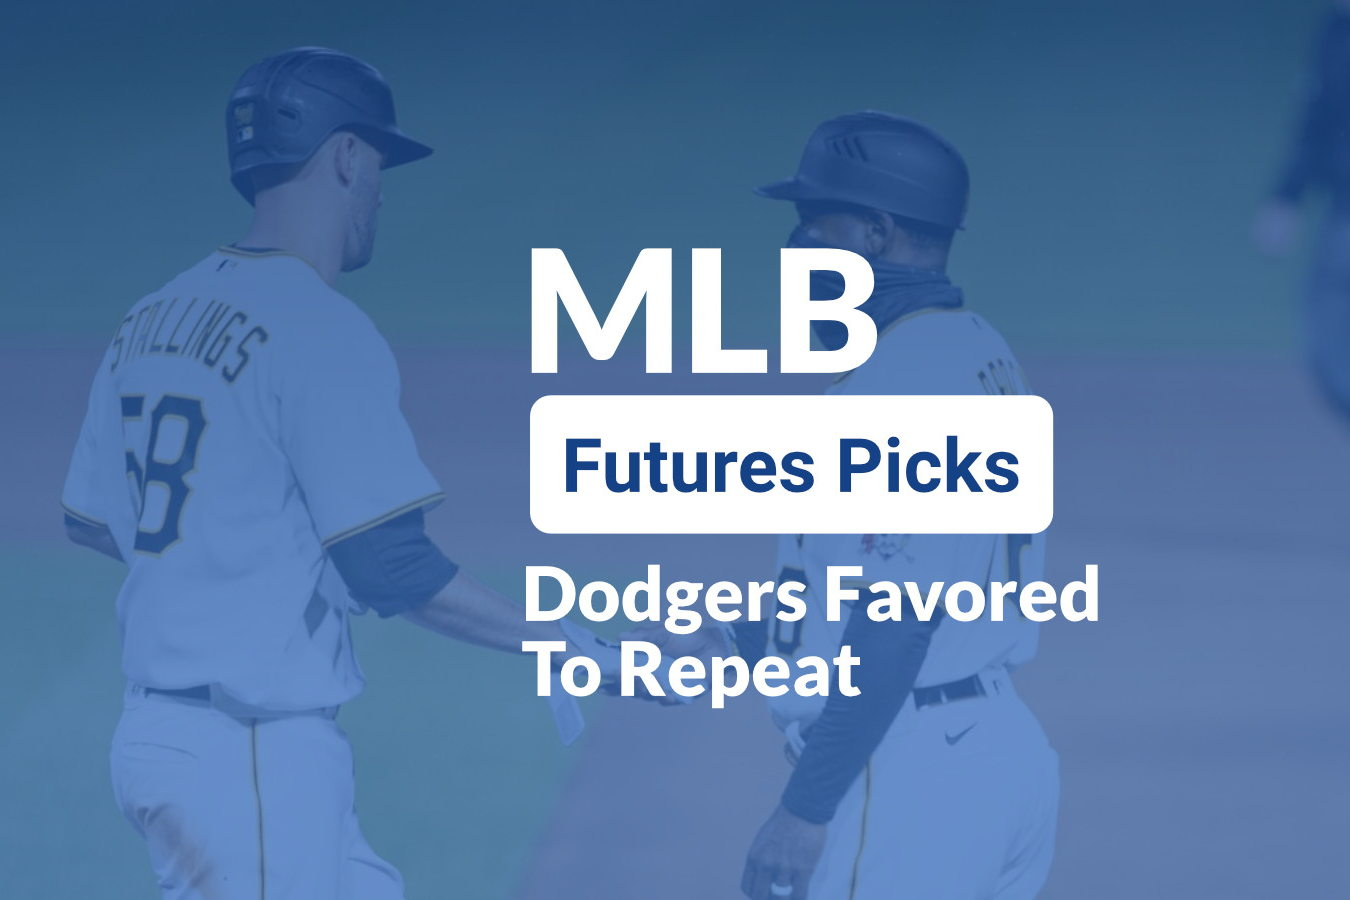 MLB Futures: Dodgers Favored To Repeat